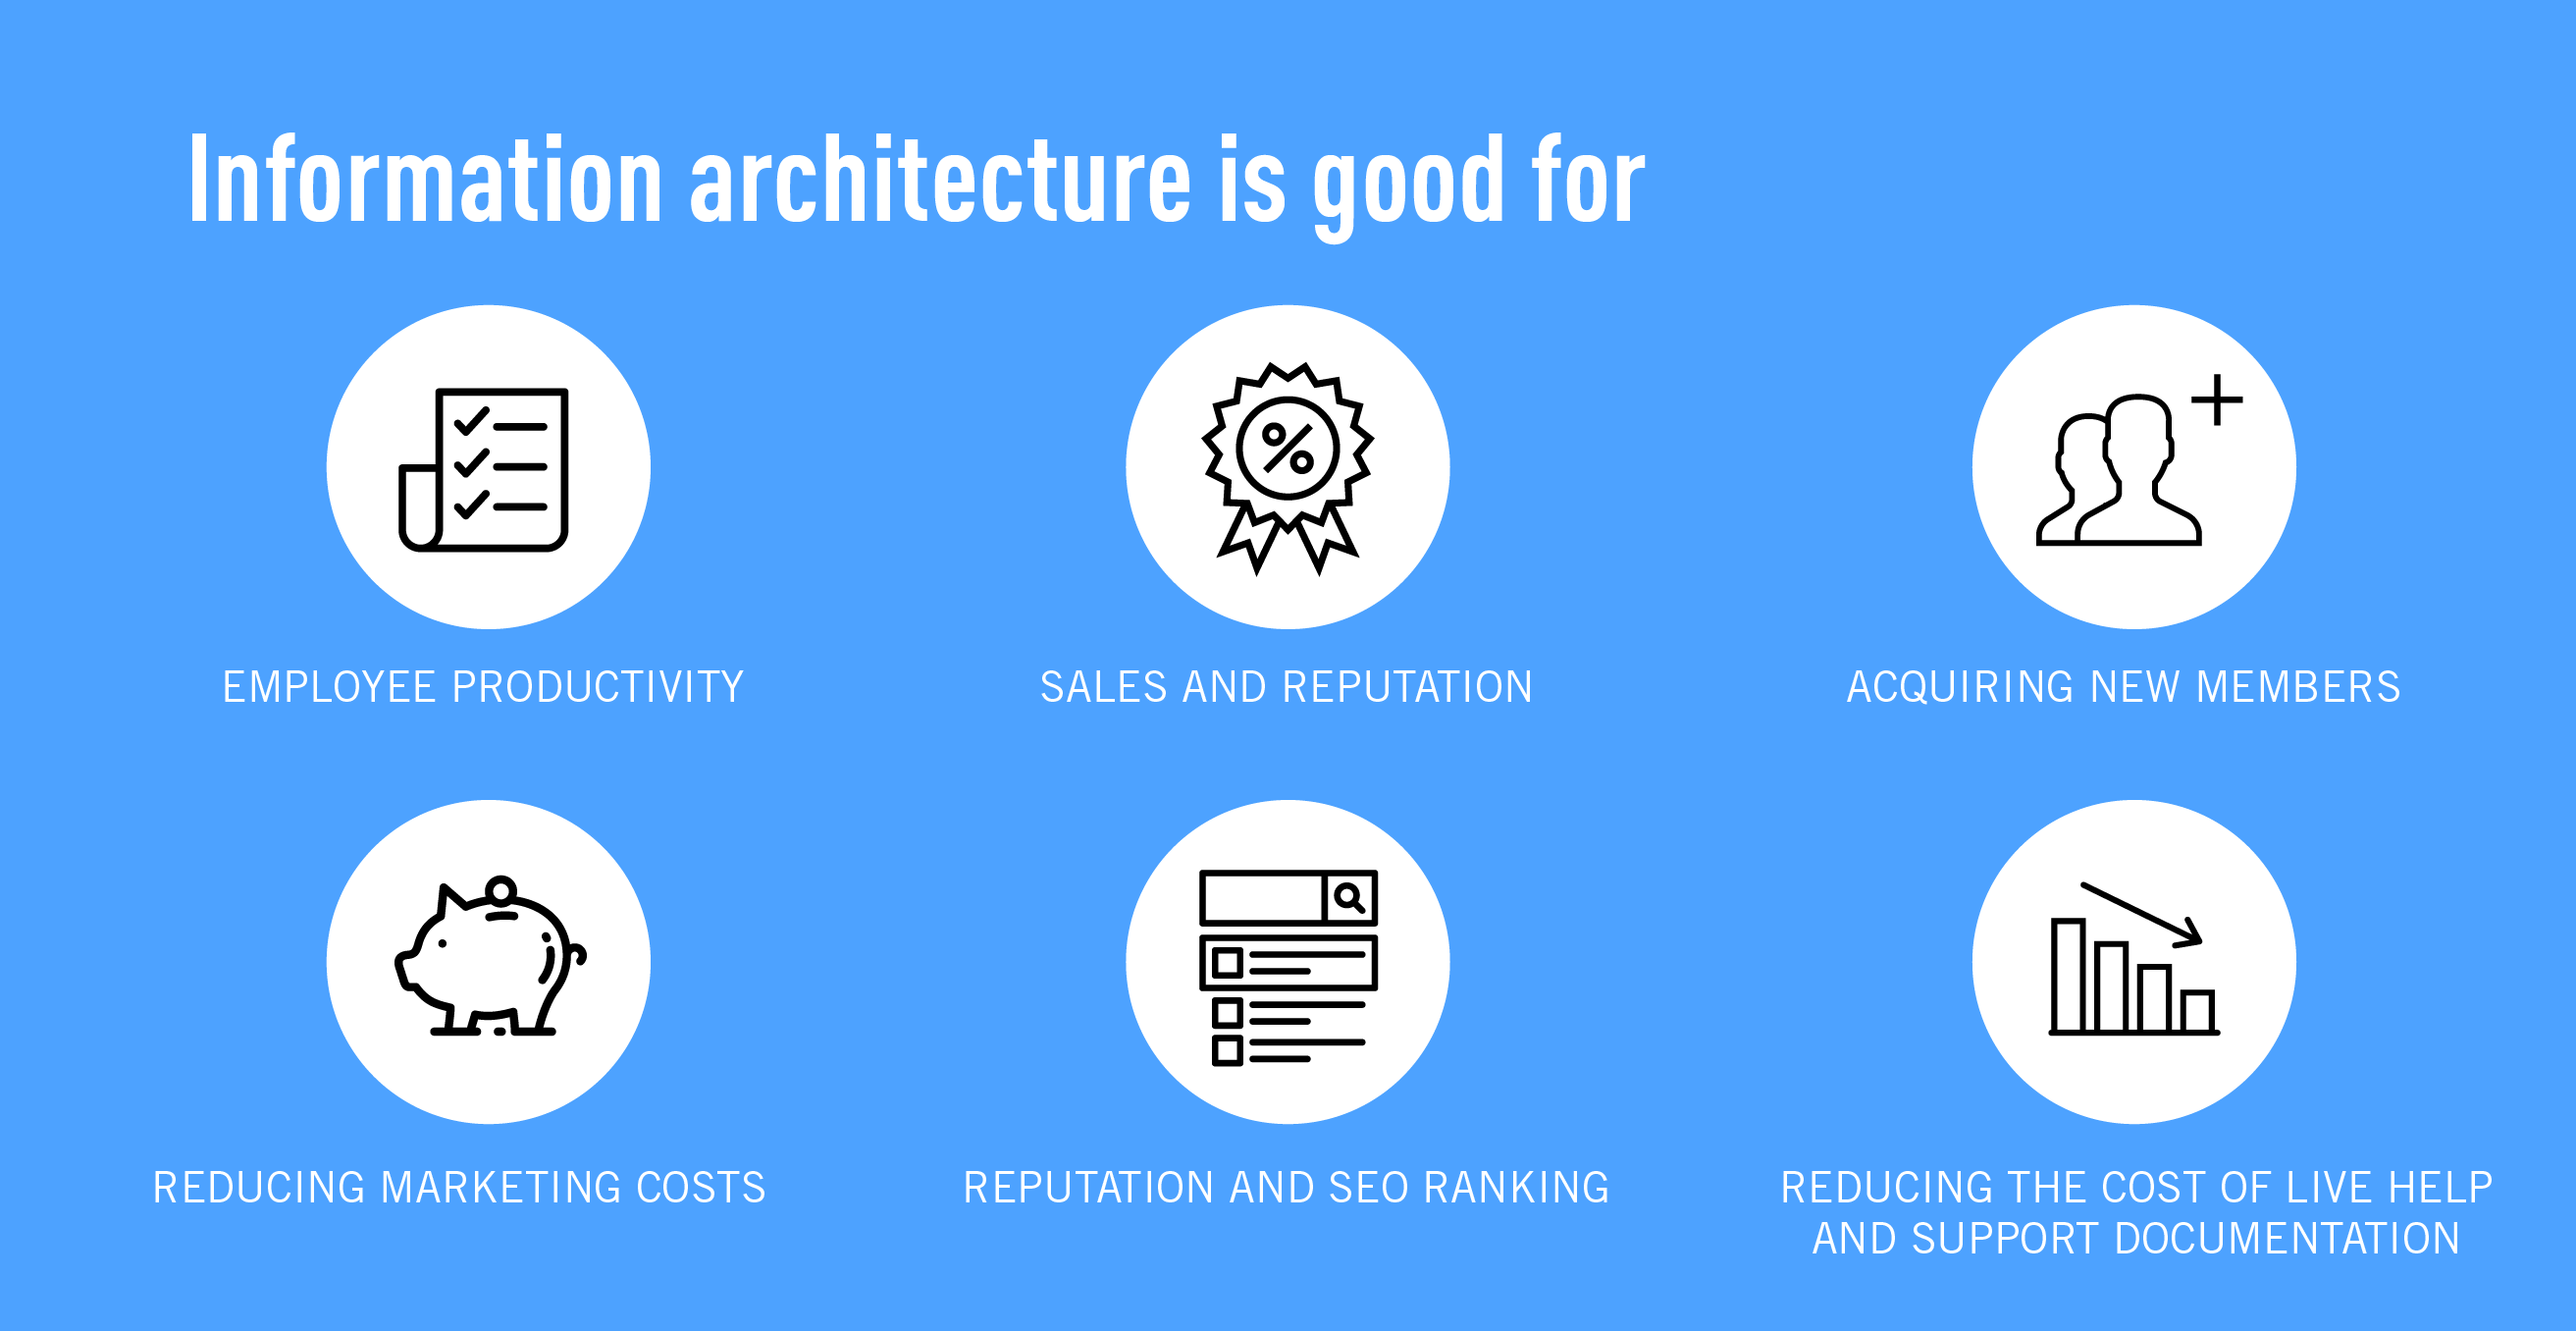 What information architecture is good for